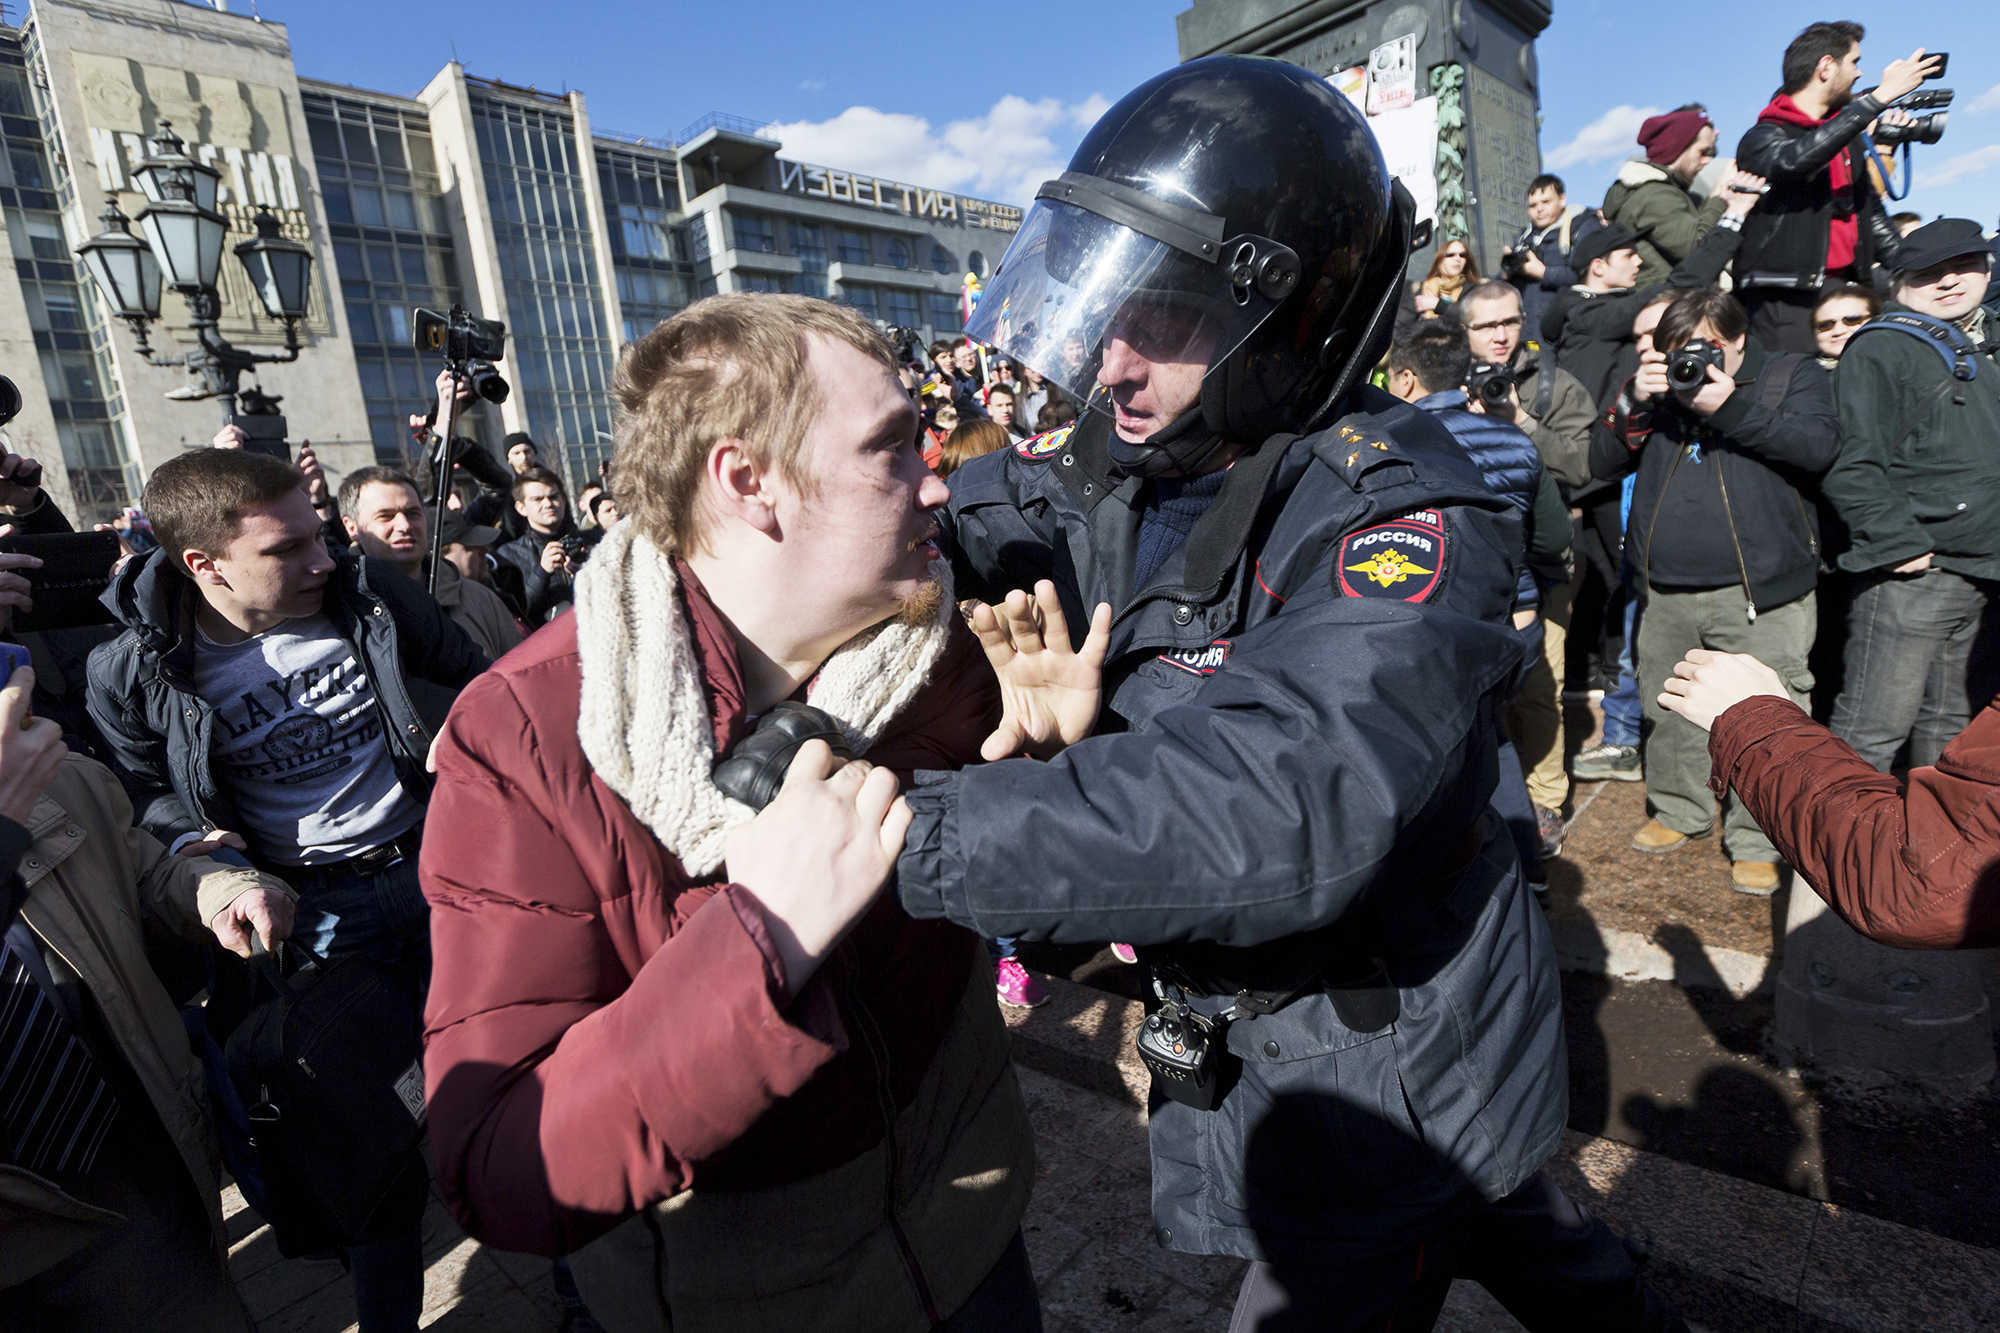 A police officer detains a protester in Moscow, Russia, on March 26, 2017.